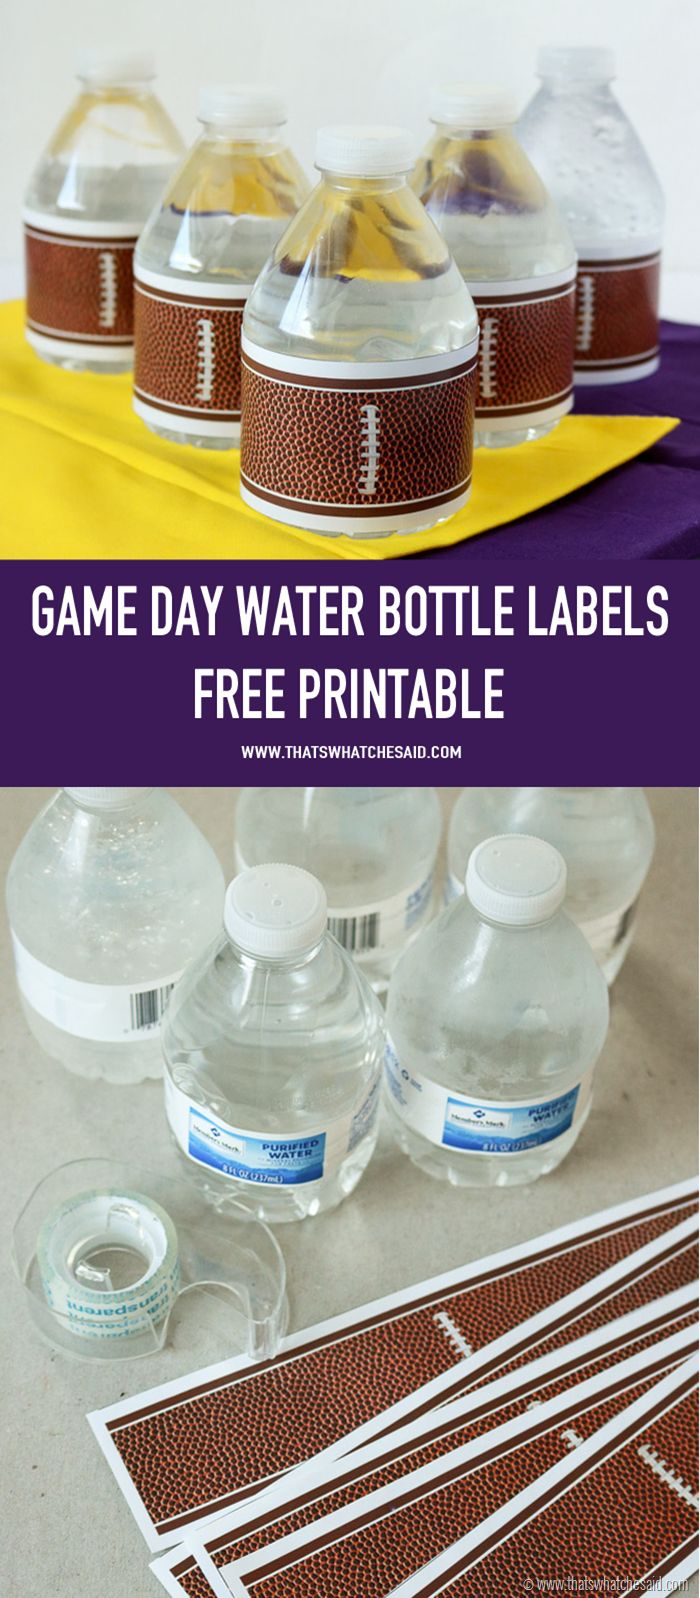 Game Day Water Bottle Labels Free Printable at www.thatswhatchesaid.com